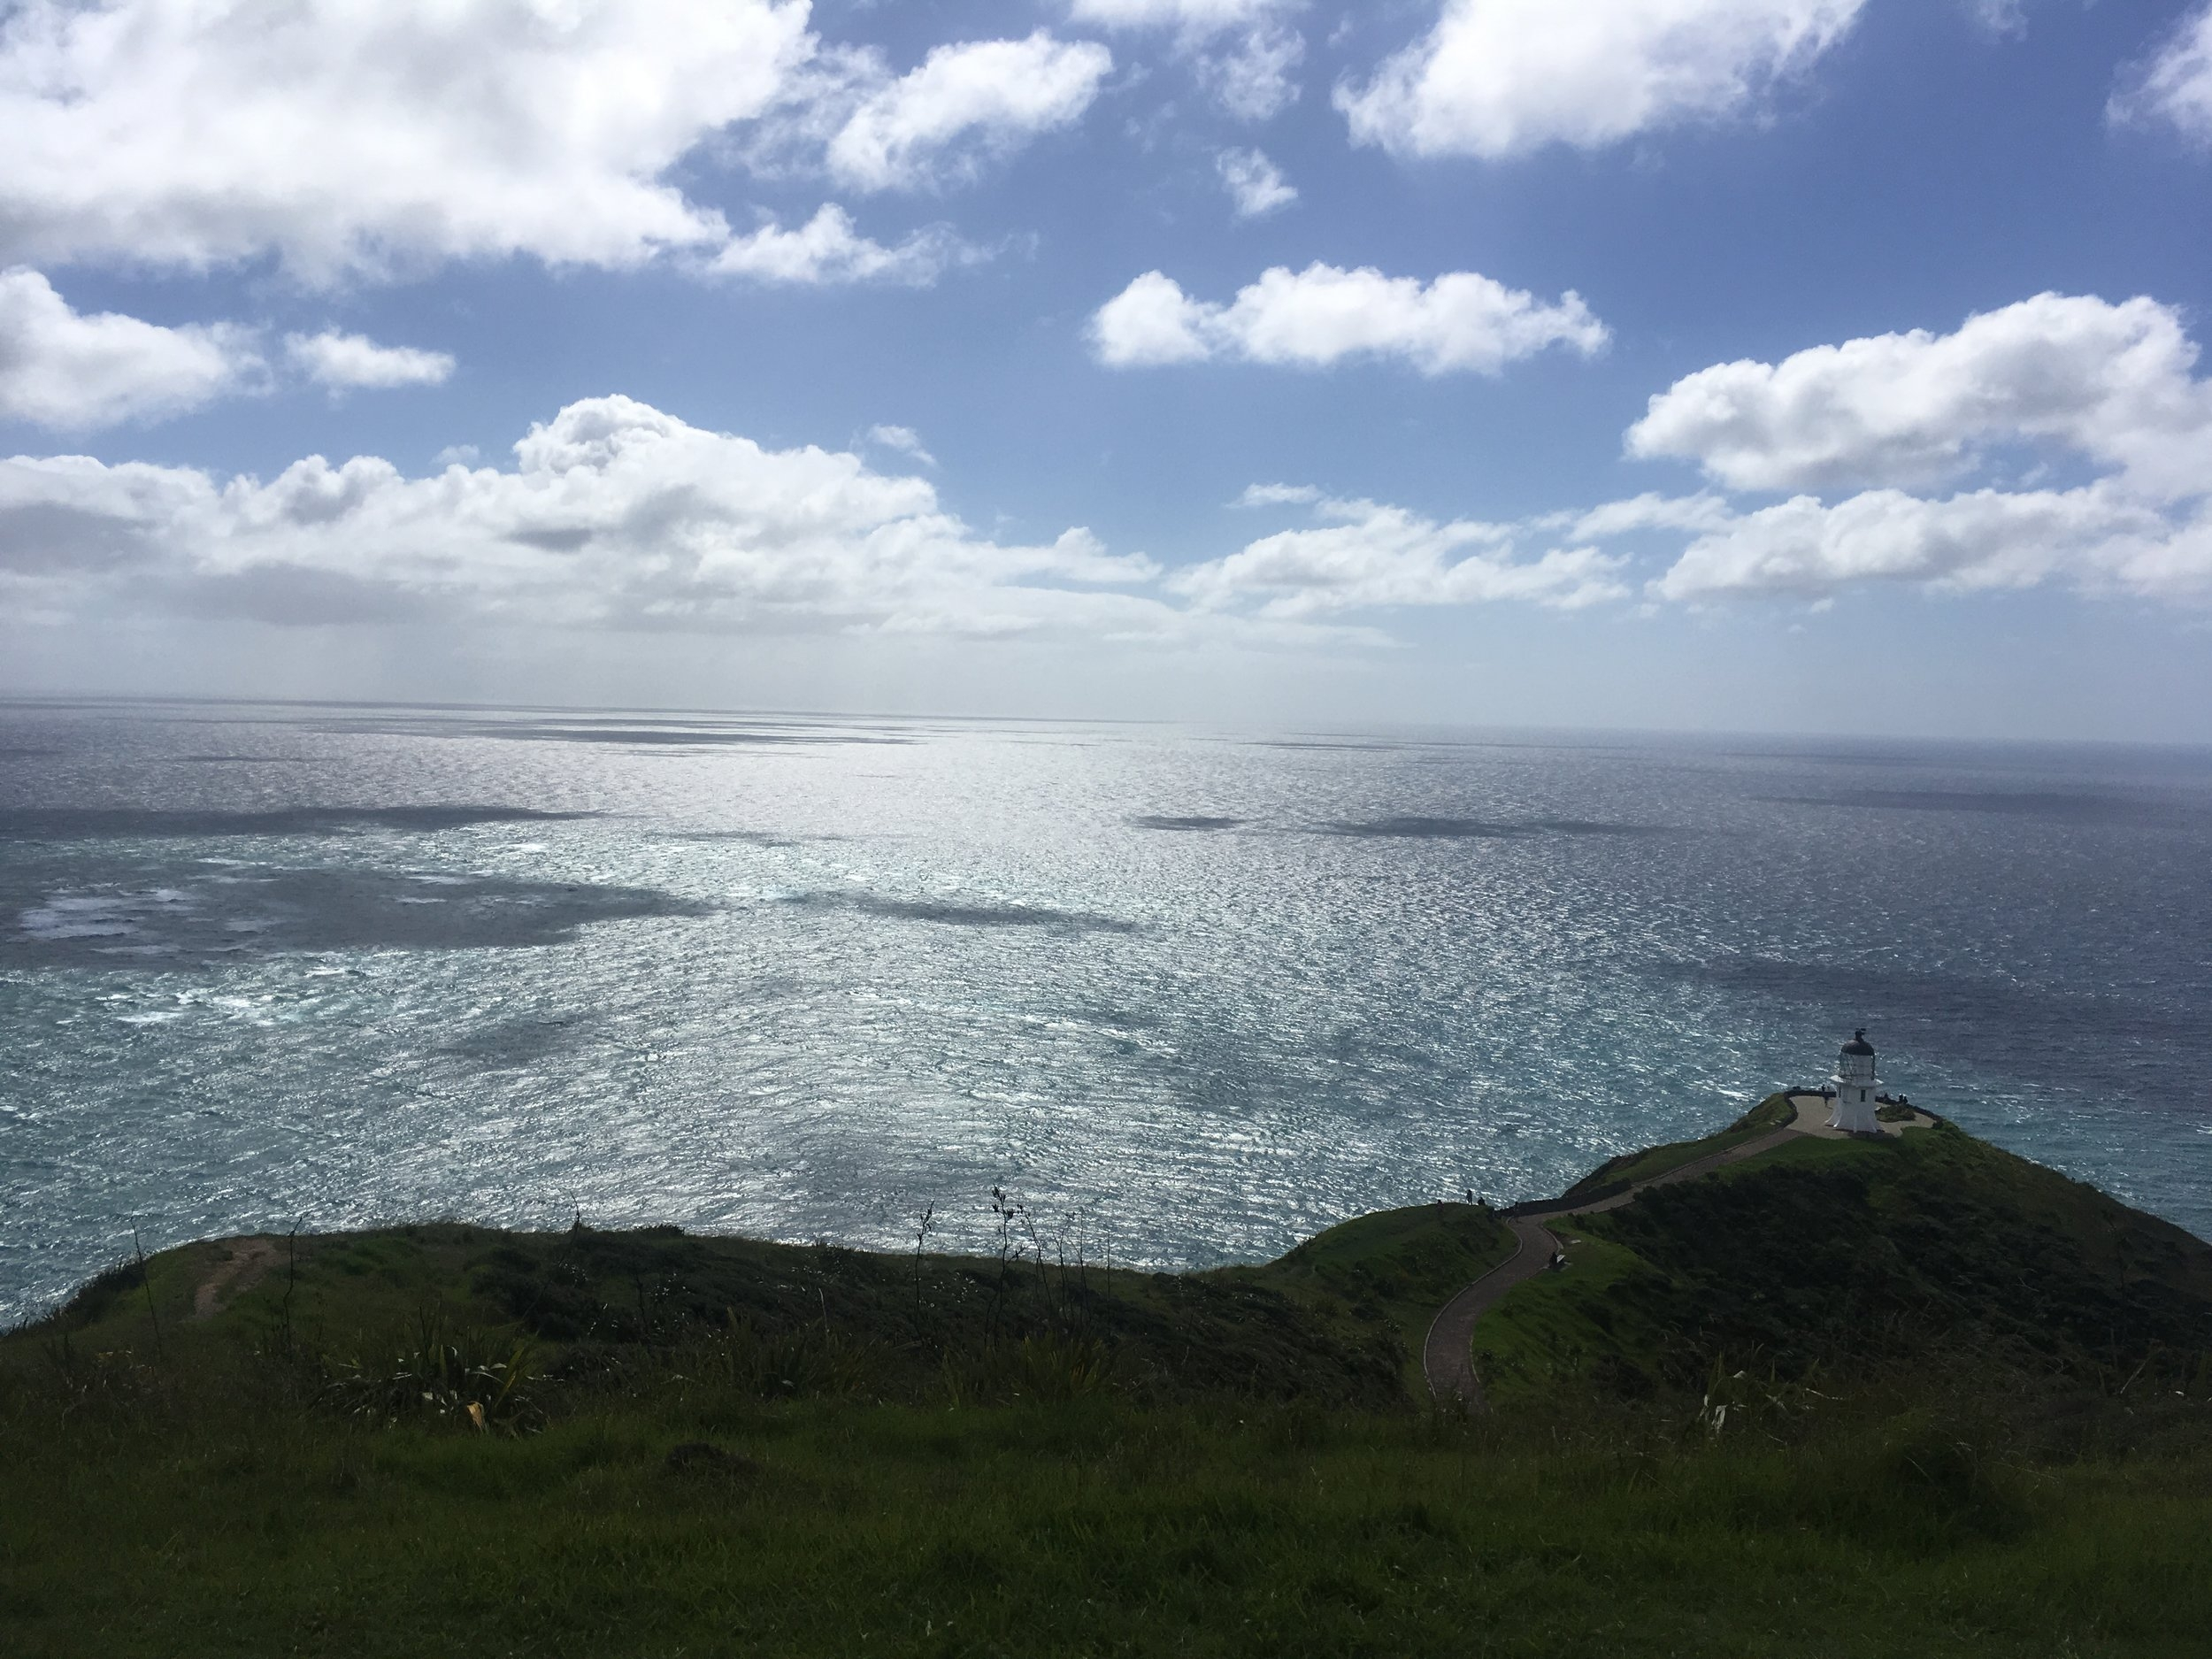 View looking out over Cape Reinga's lighthouse